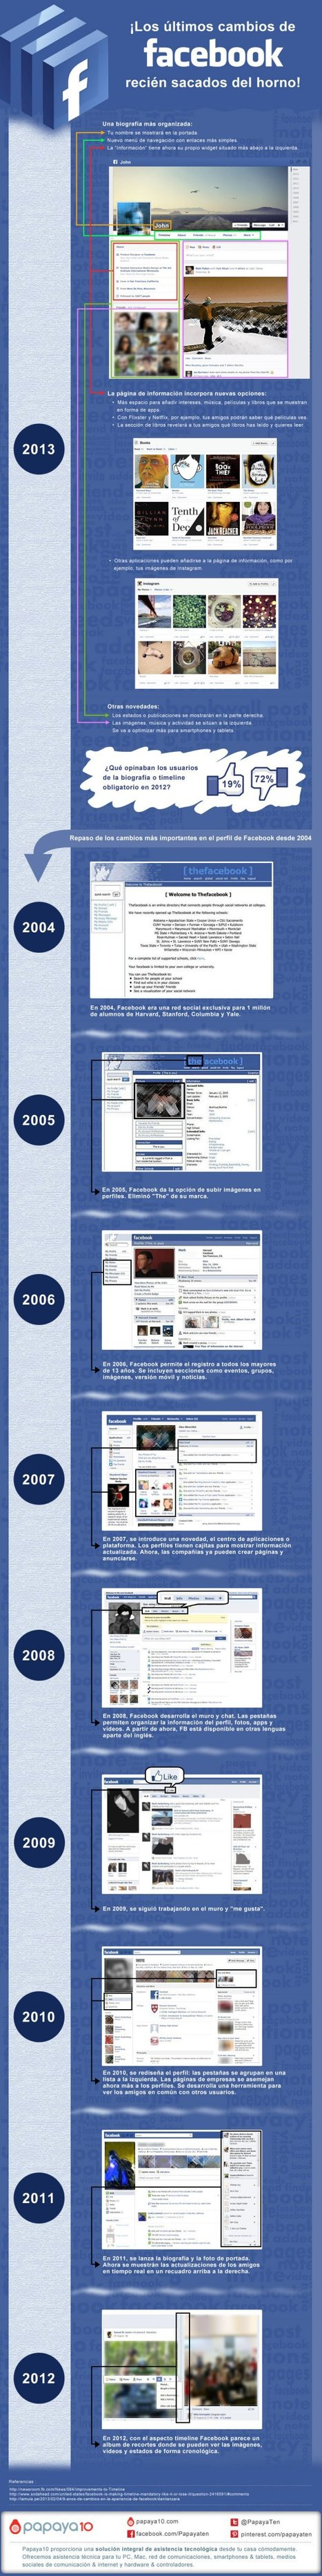 Los últimos cambios de #Facebook en una infografía en español | Gabriel Catalano human being | #INperfeccion® a way to find new insight & perspectives | Scoop.it